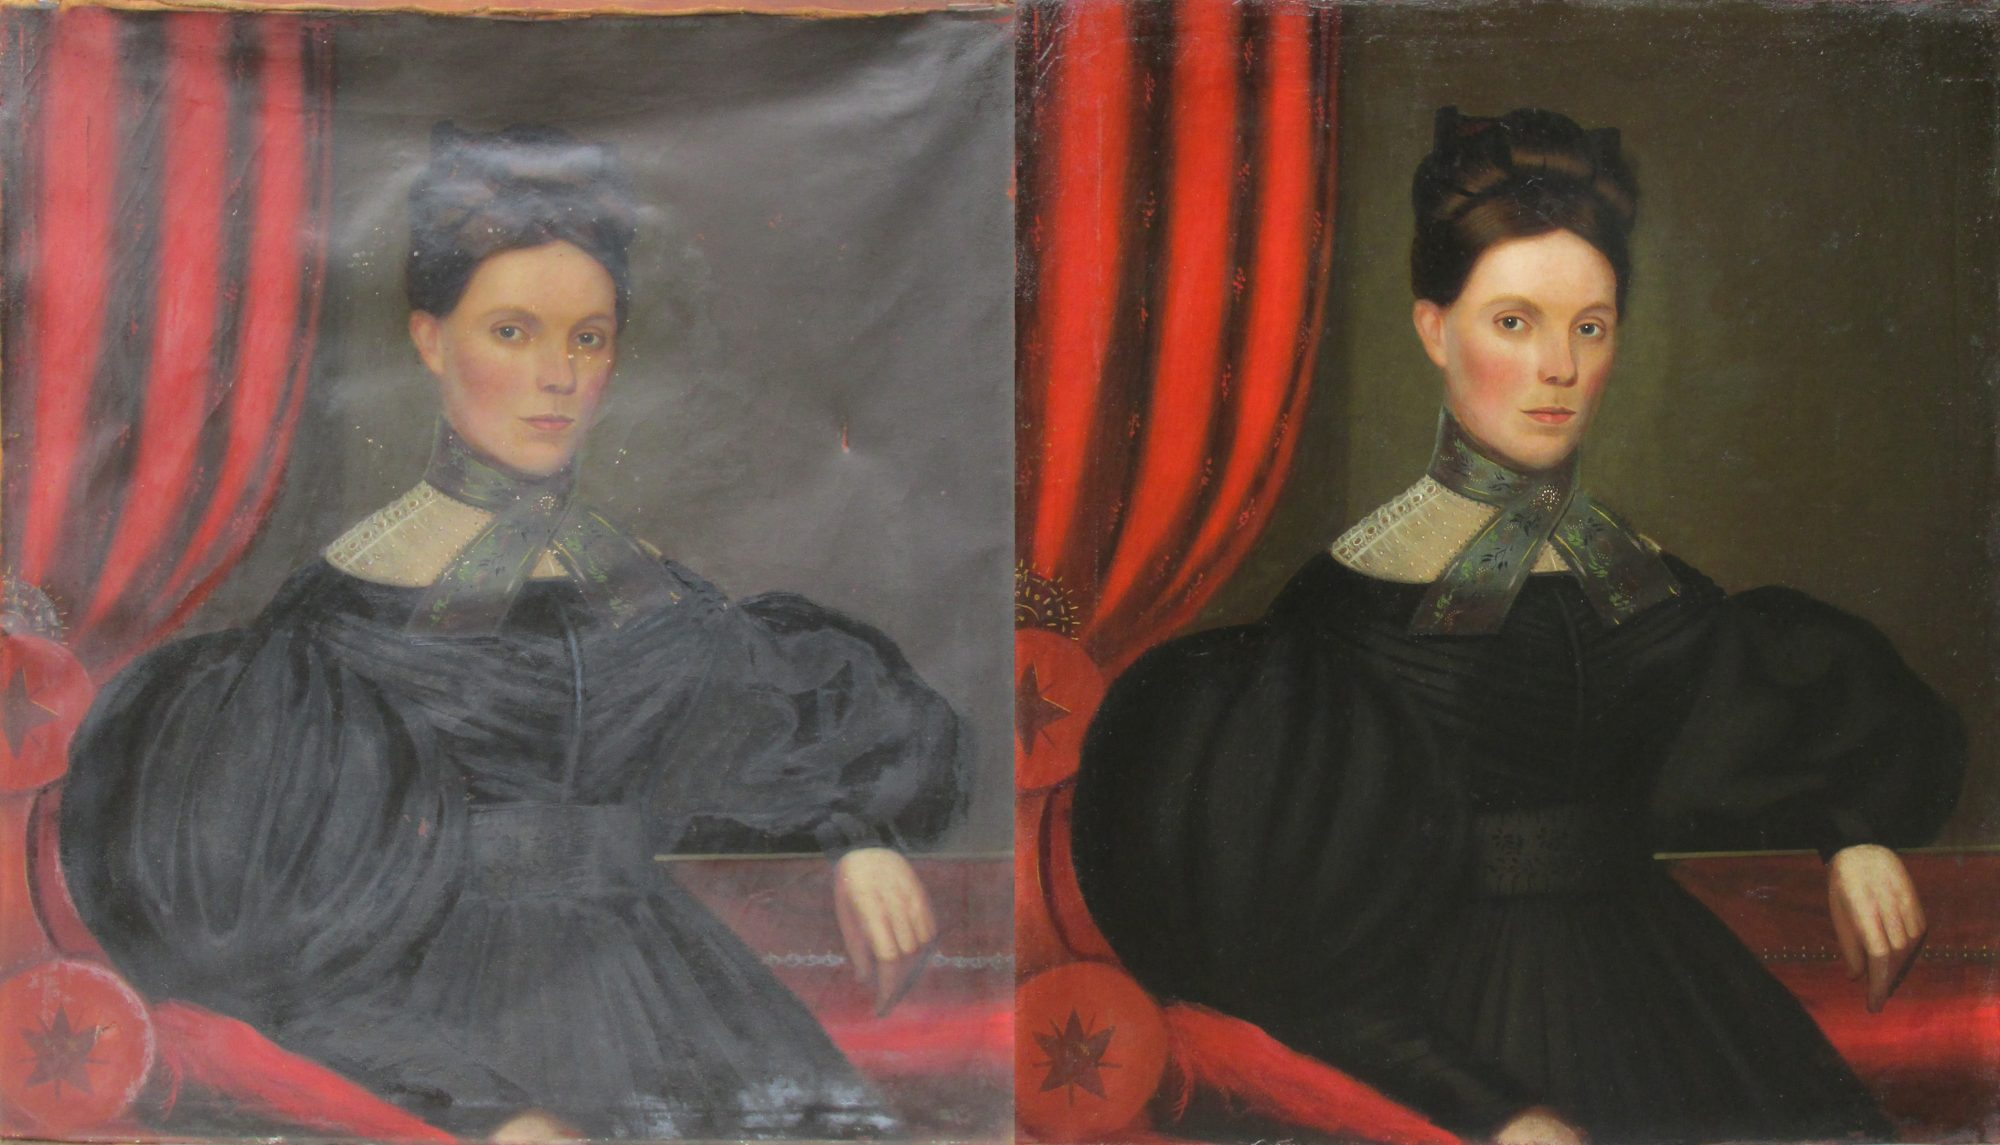 Portsmouth Treasures: A Century of Collecting at the Portsmouth Historical Society